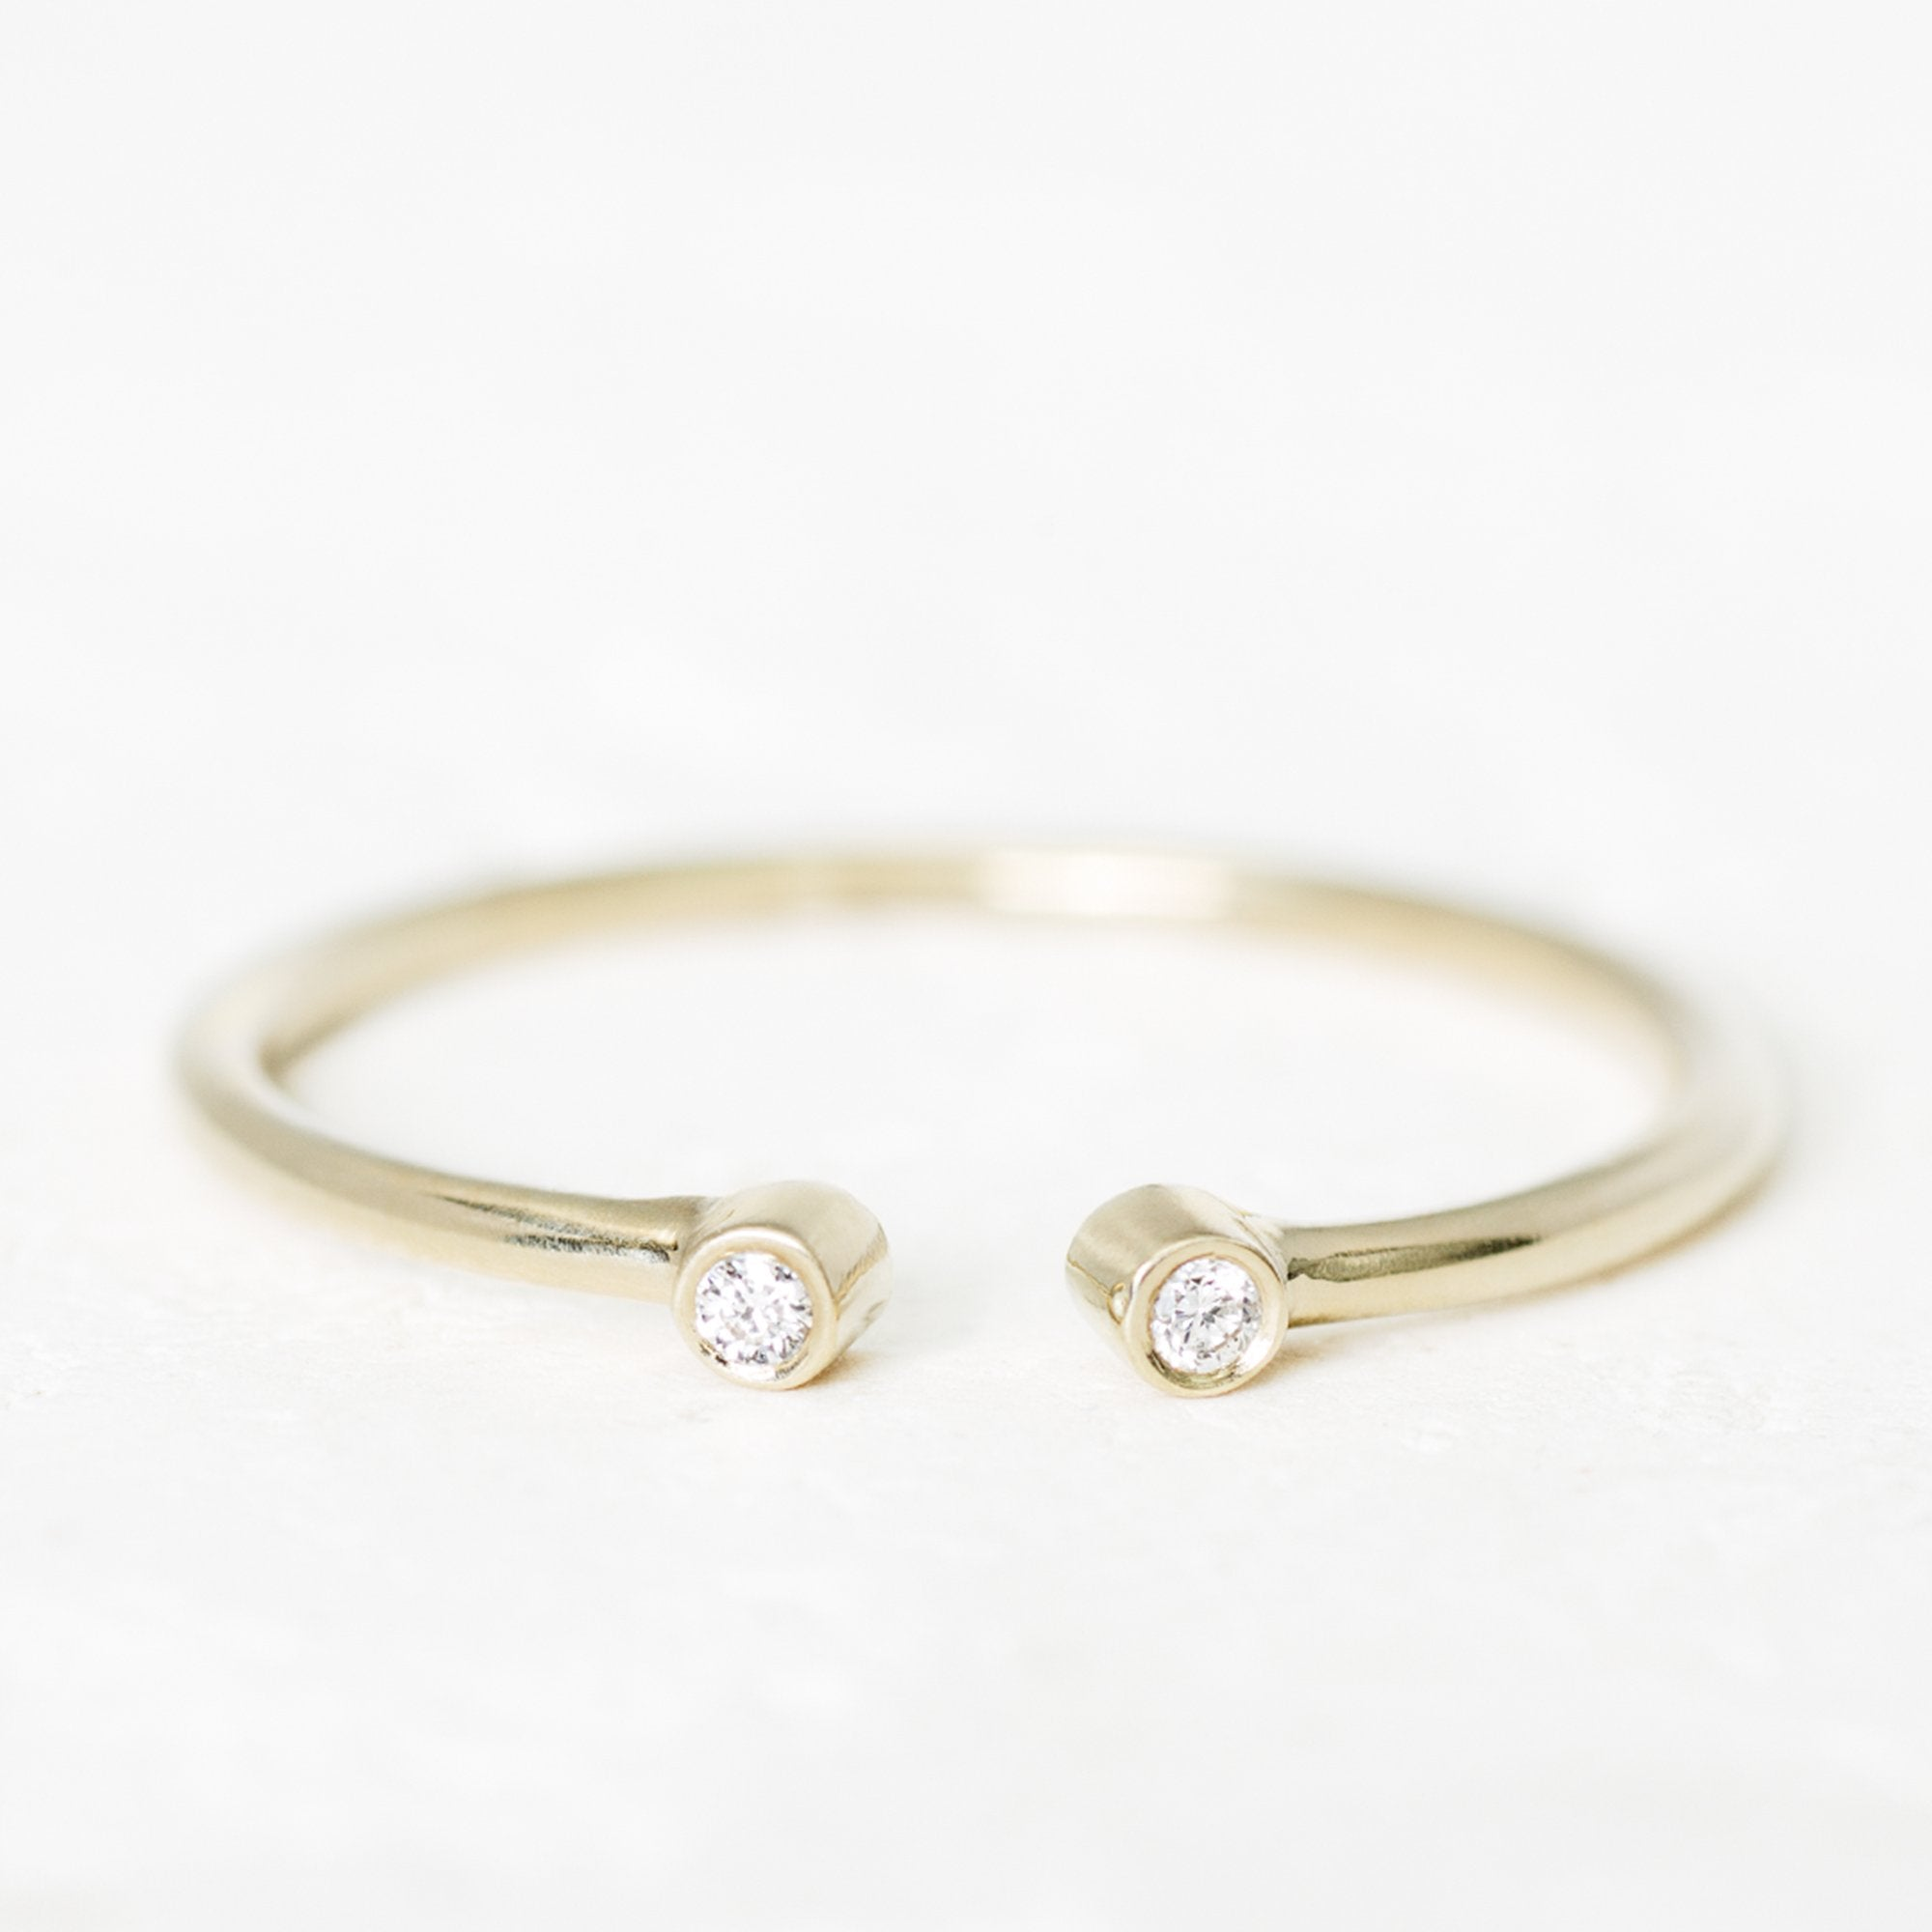 https://one2threejewelry.com/products/open-ring